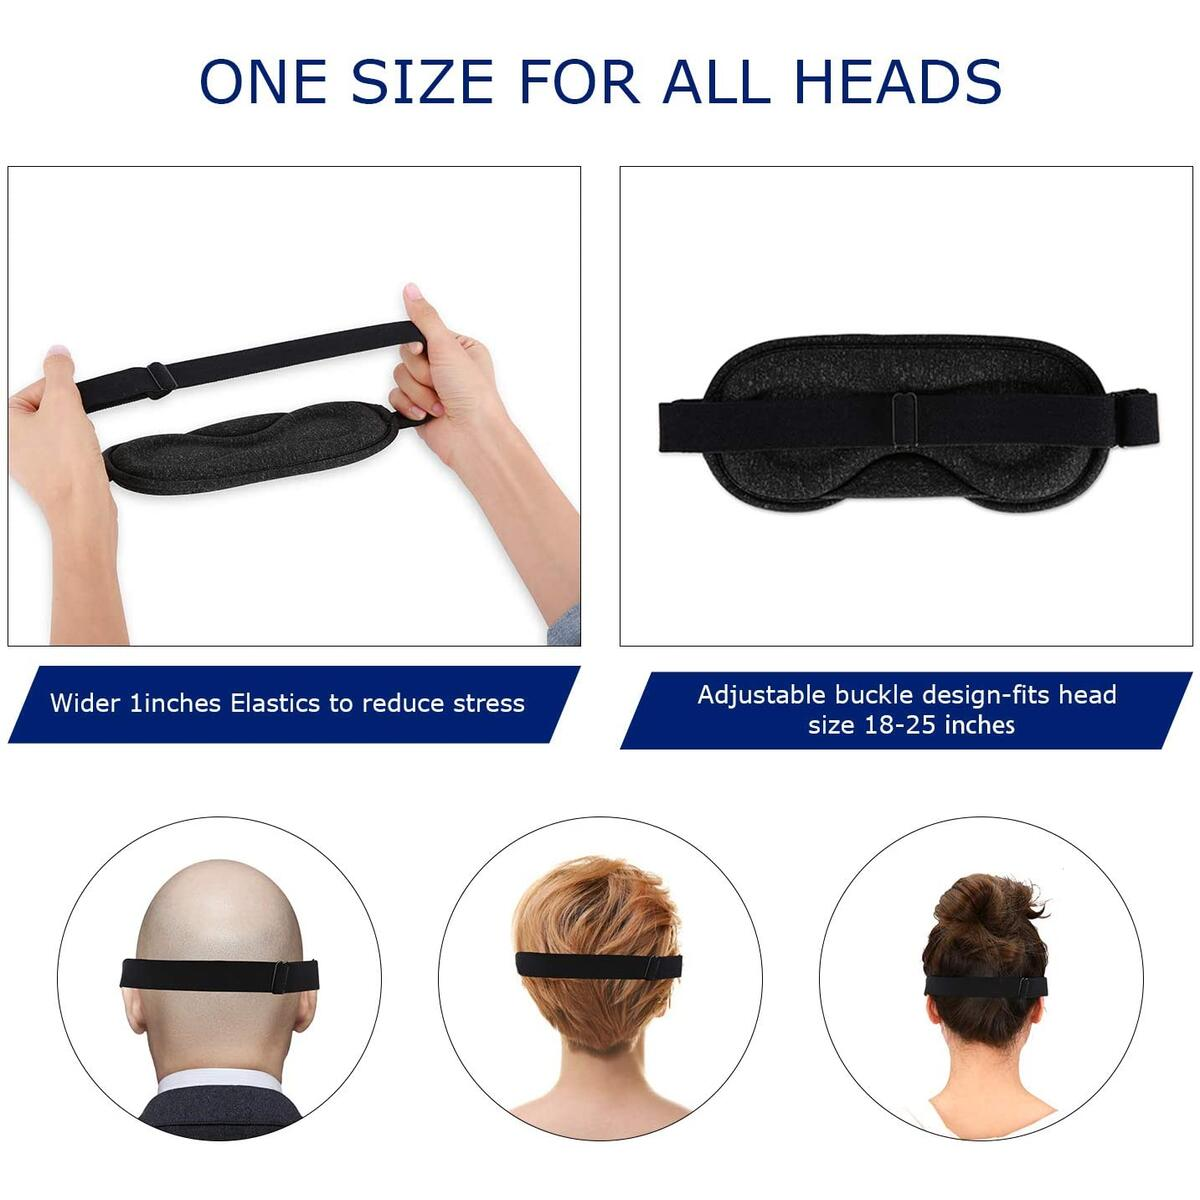 Eye Mask for Sleeping, Soft Comfortable Cotton Weighted Sleep Mask with Earplugs for Air Travel (Black)